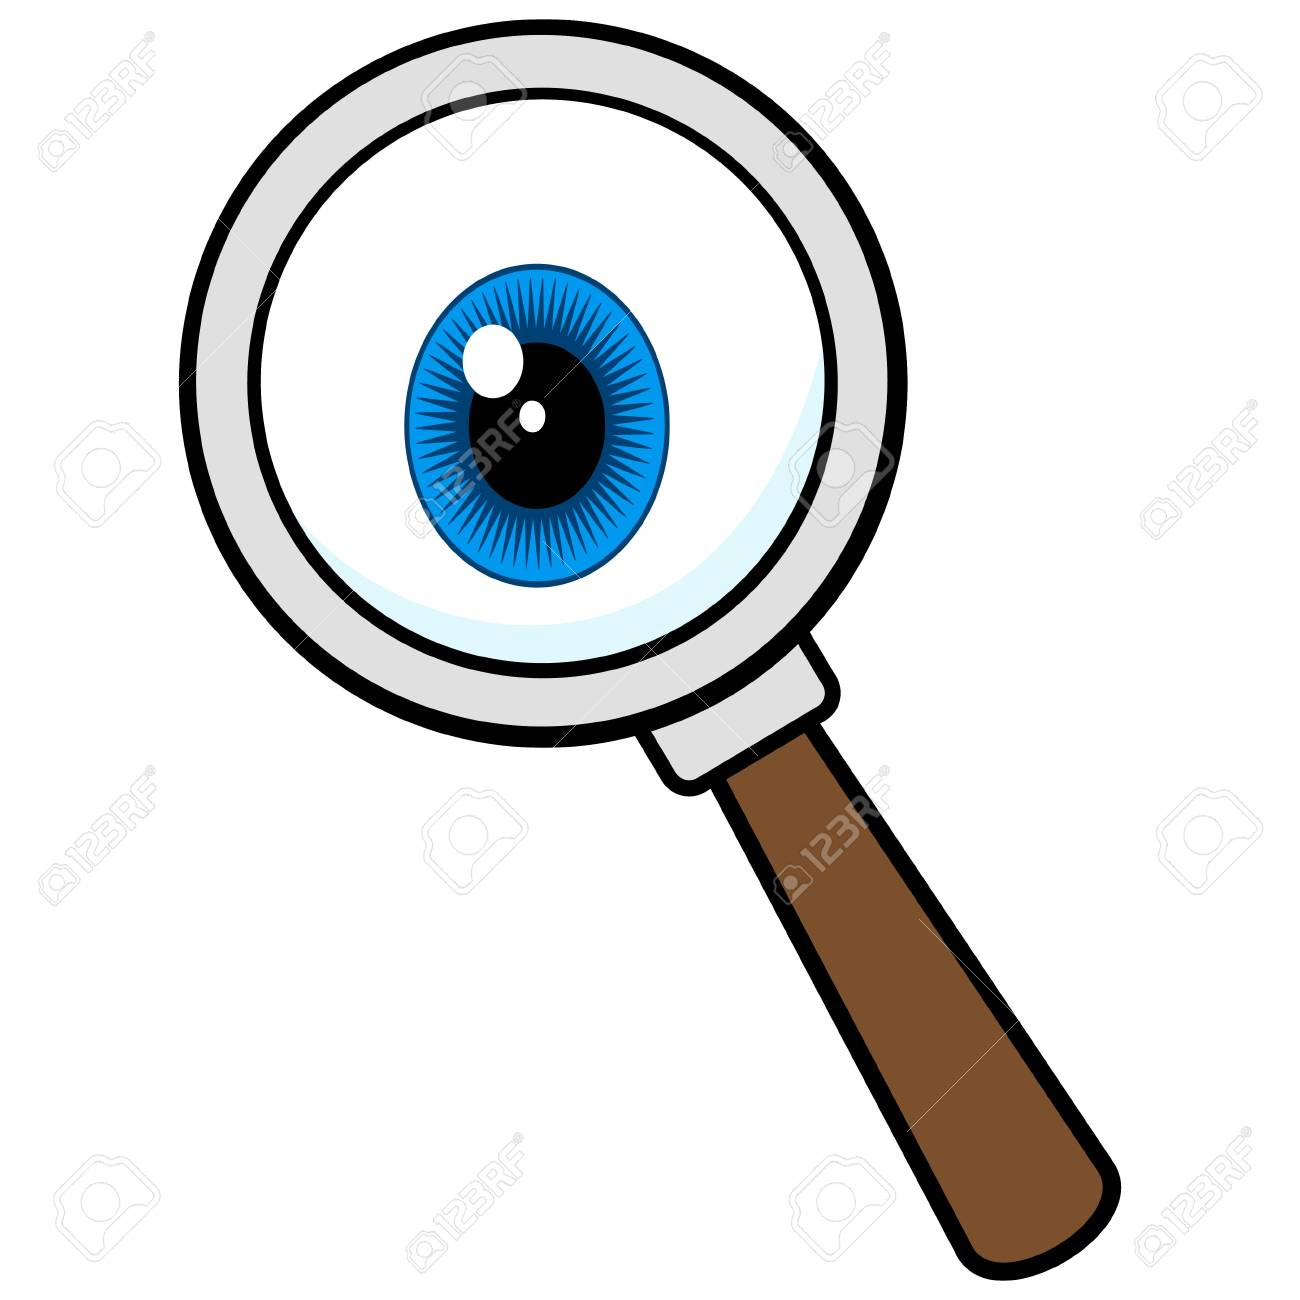 Private Eye Magnifying Glass Royalty Free Cliparts Vectors And Stock Illustration Image 80628792